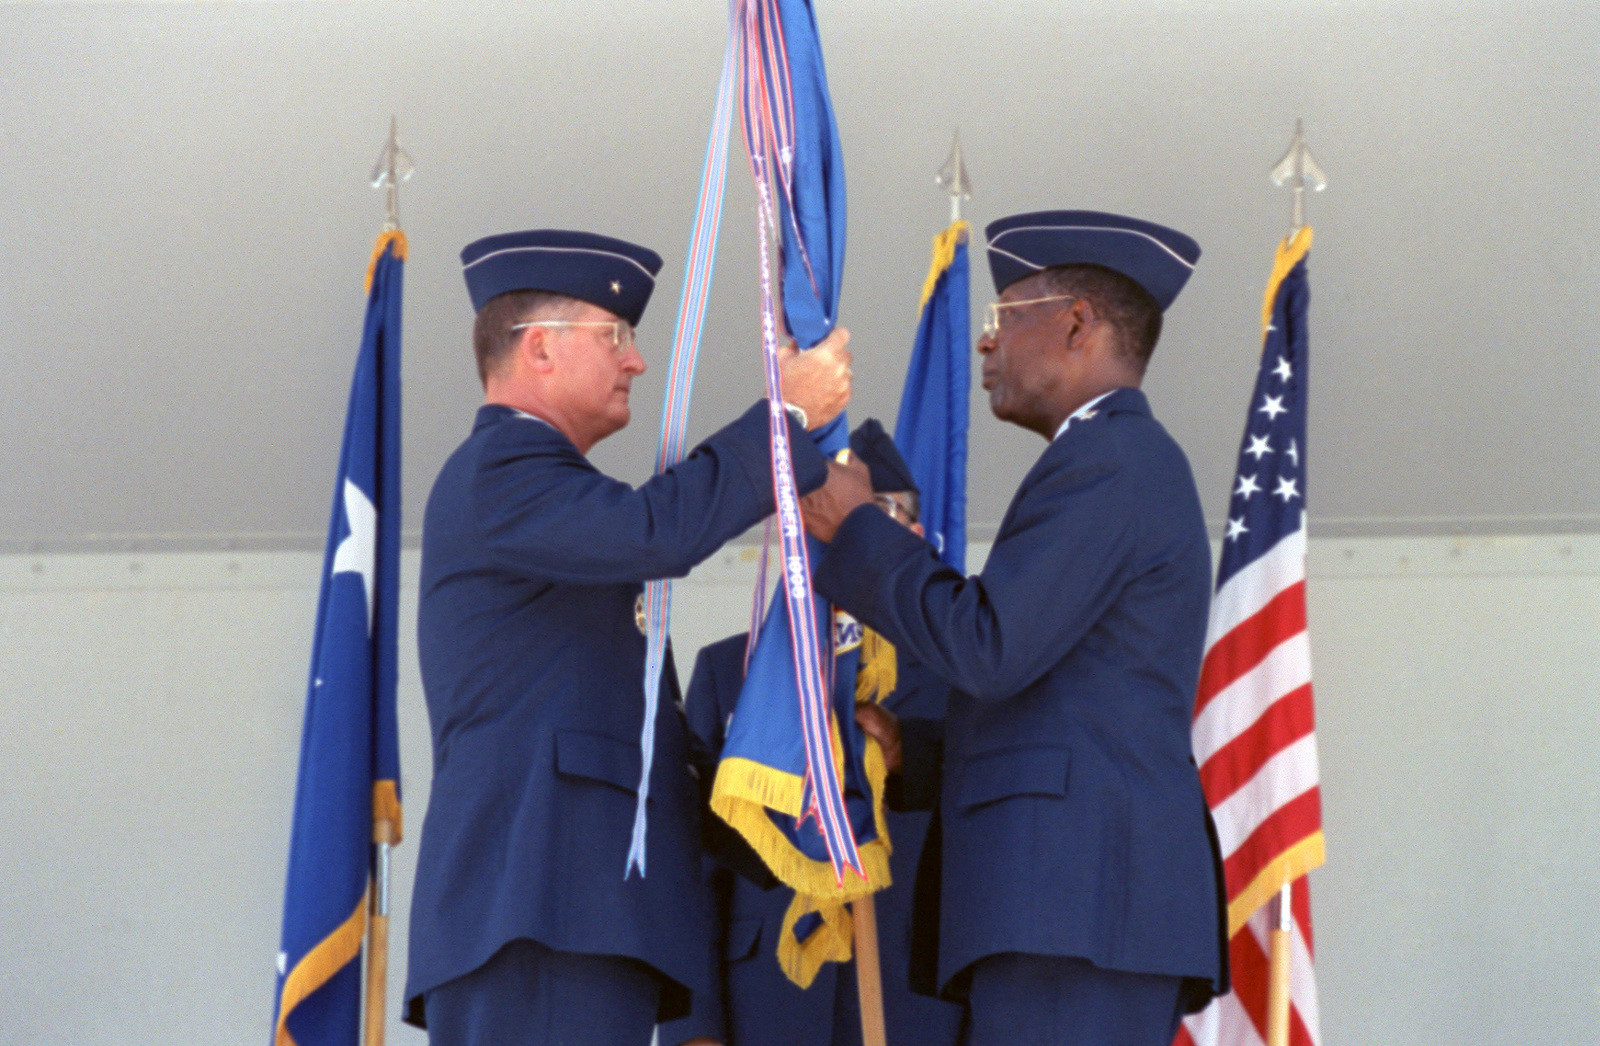 General (GEN) Lester L. Lyles, (right), USAF, Commander, Air Force Material Command (AFMC), receives the Kelly AFB, Guidon from Brigadier General (BGEN) Robert Murdock, USAF, San Antonio - Air Logistics Center (SA-ALC) Commander, during the bases closing ceremonies. Although the closing ceremony is in history books, government officials still actually own Kelly property and will until federal and state environmental regulators okay remedies for the installation's 30 sites that need environmental clean-up, according to federal law provisions